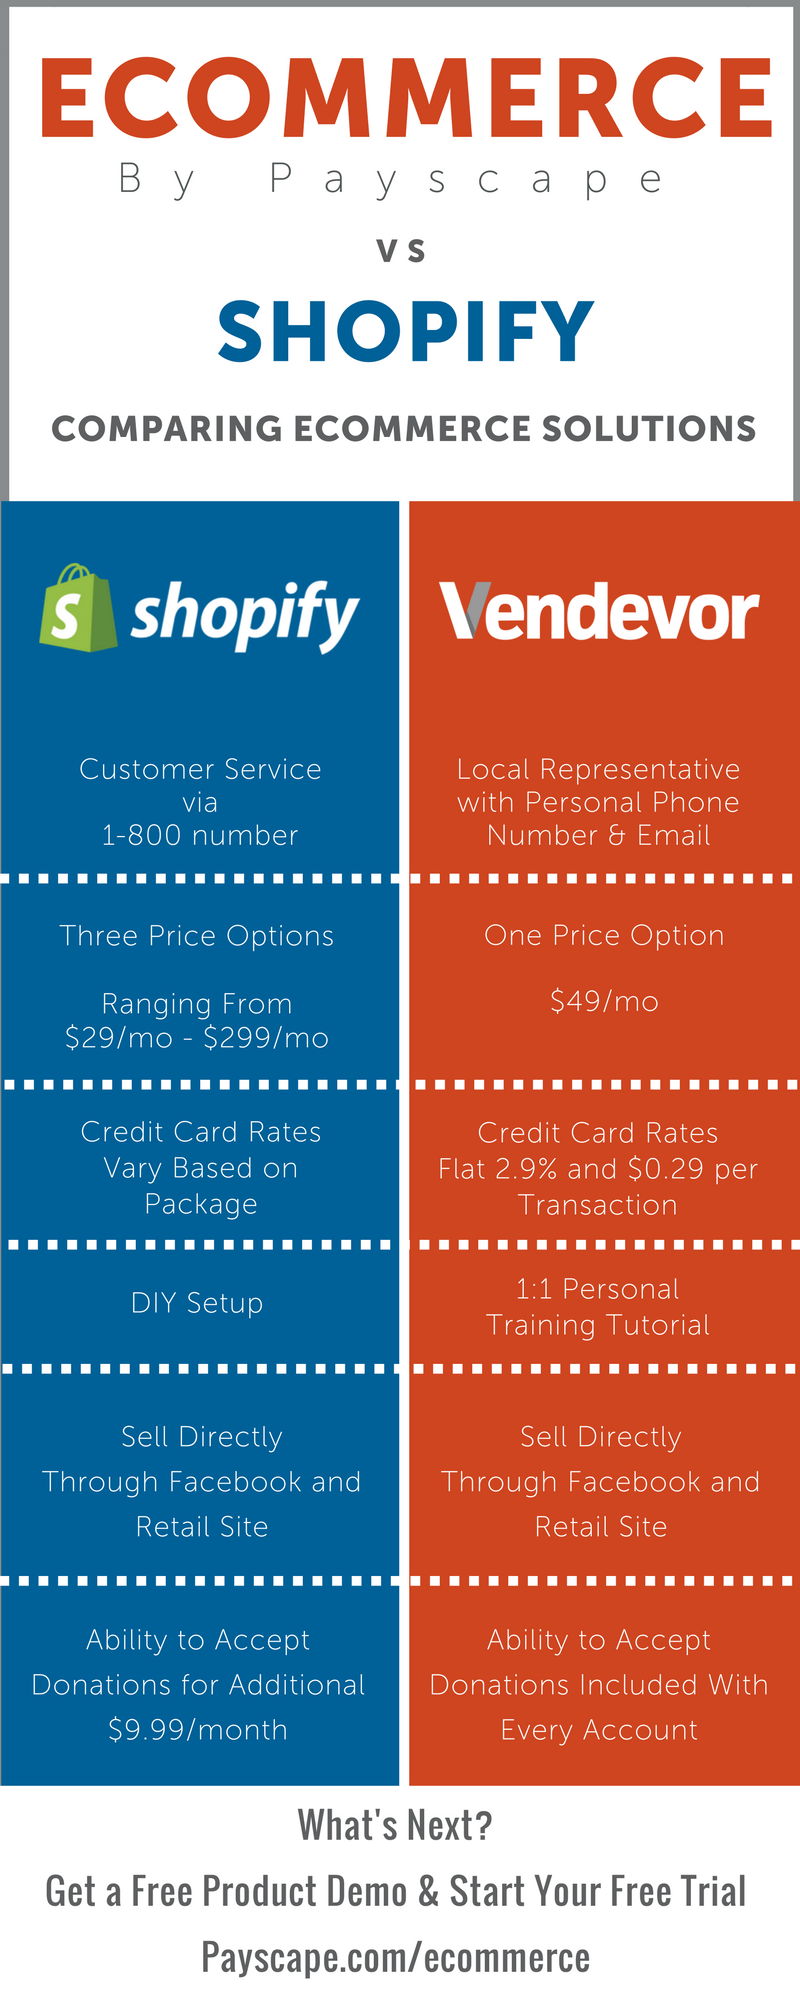 Payscape vs Shopify Infographic